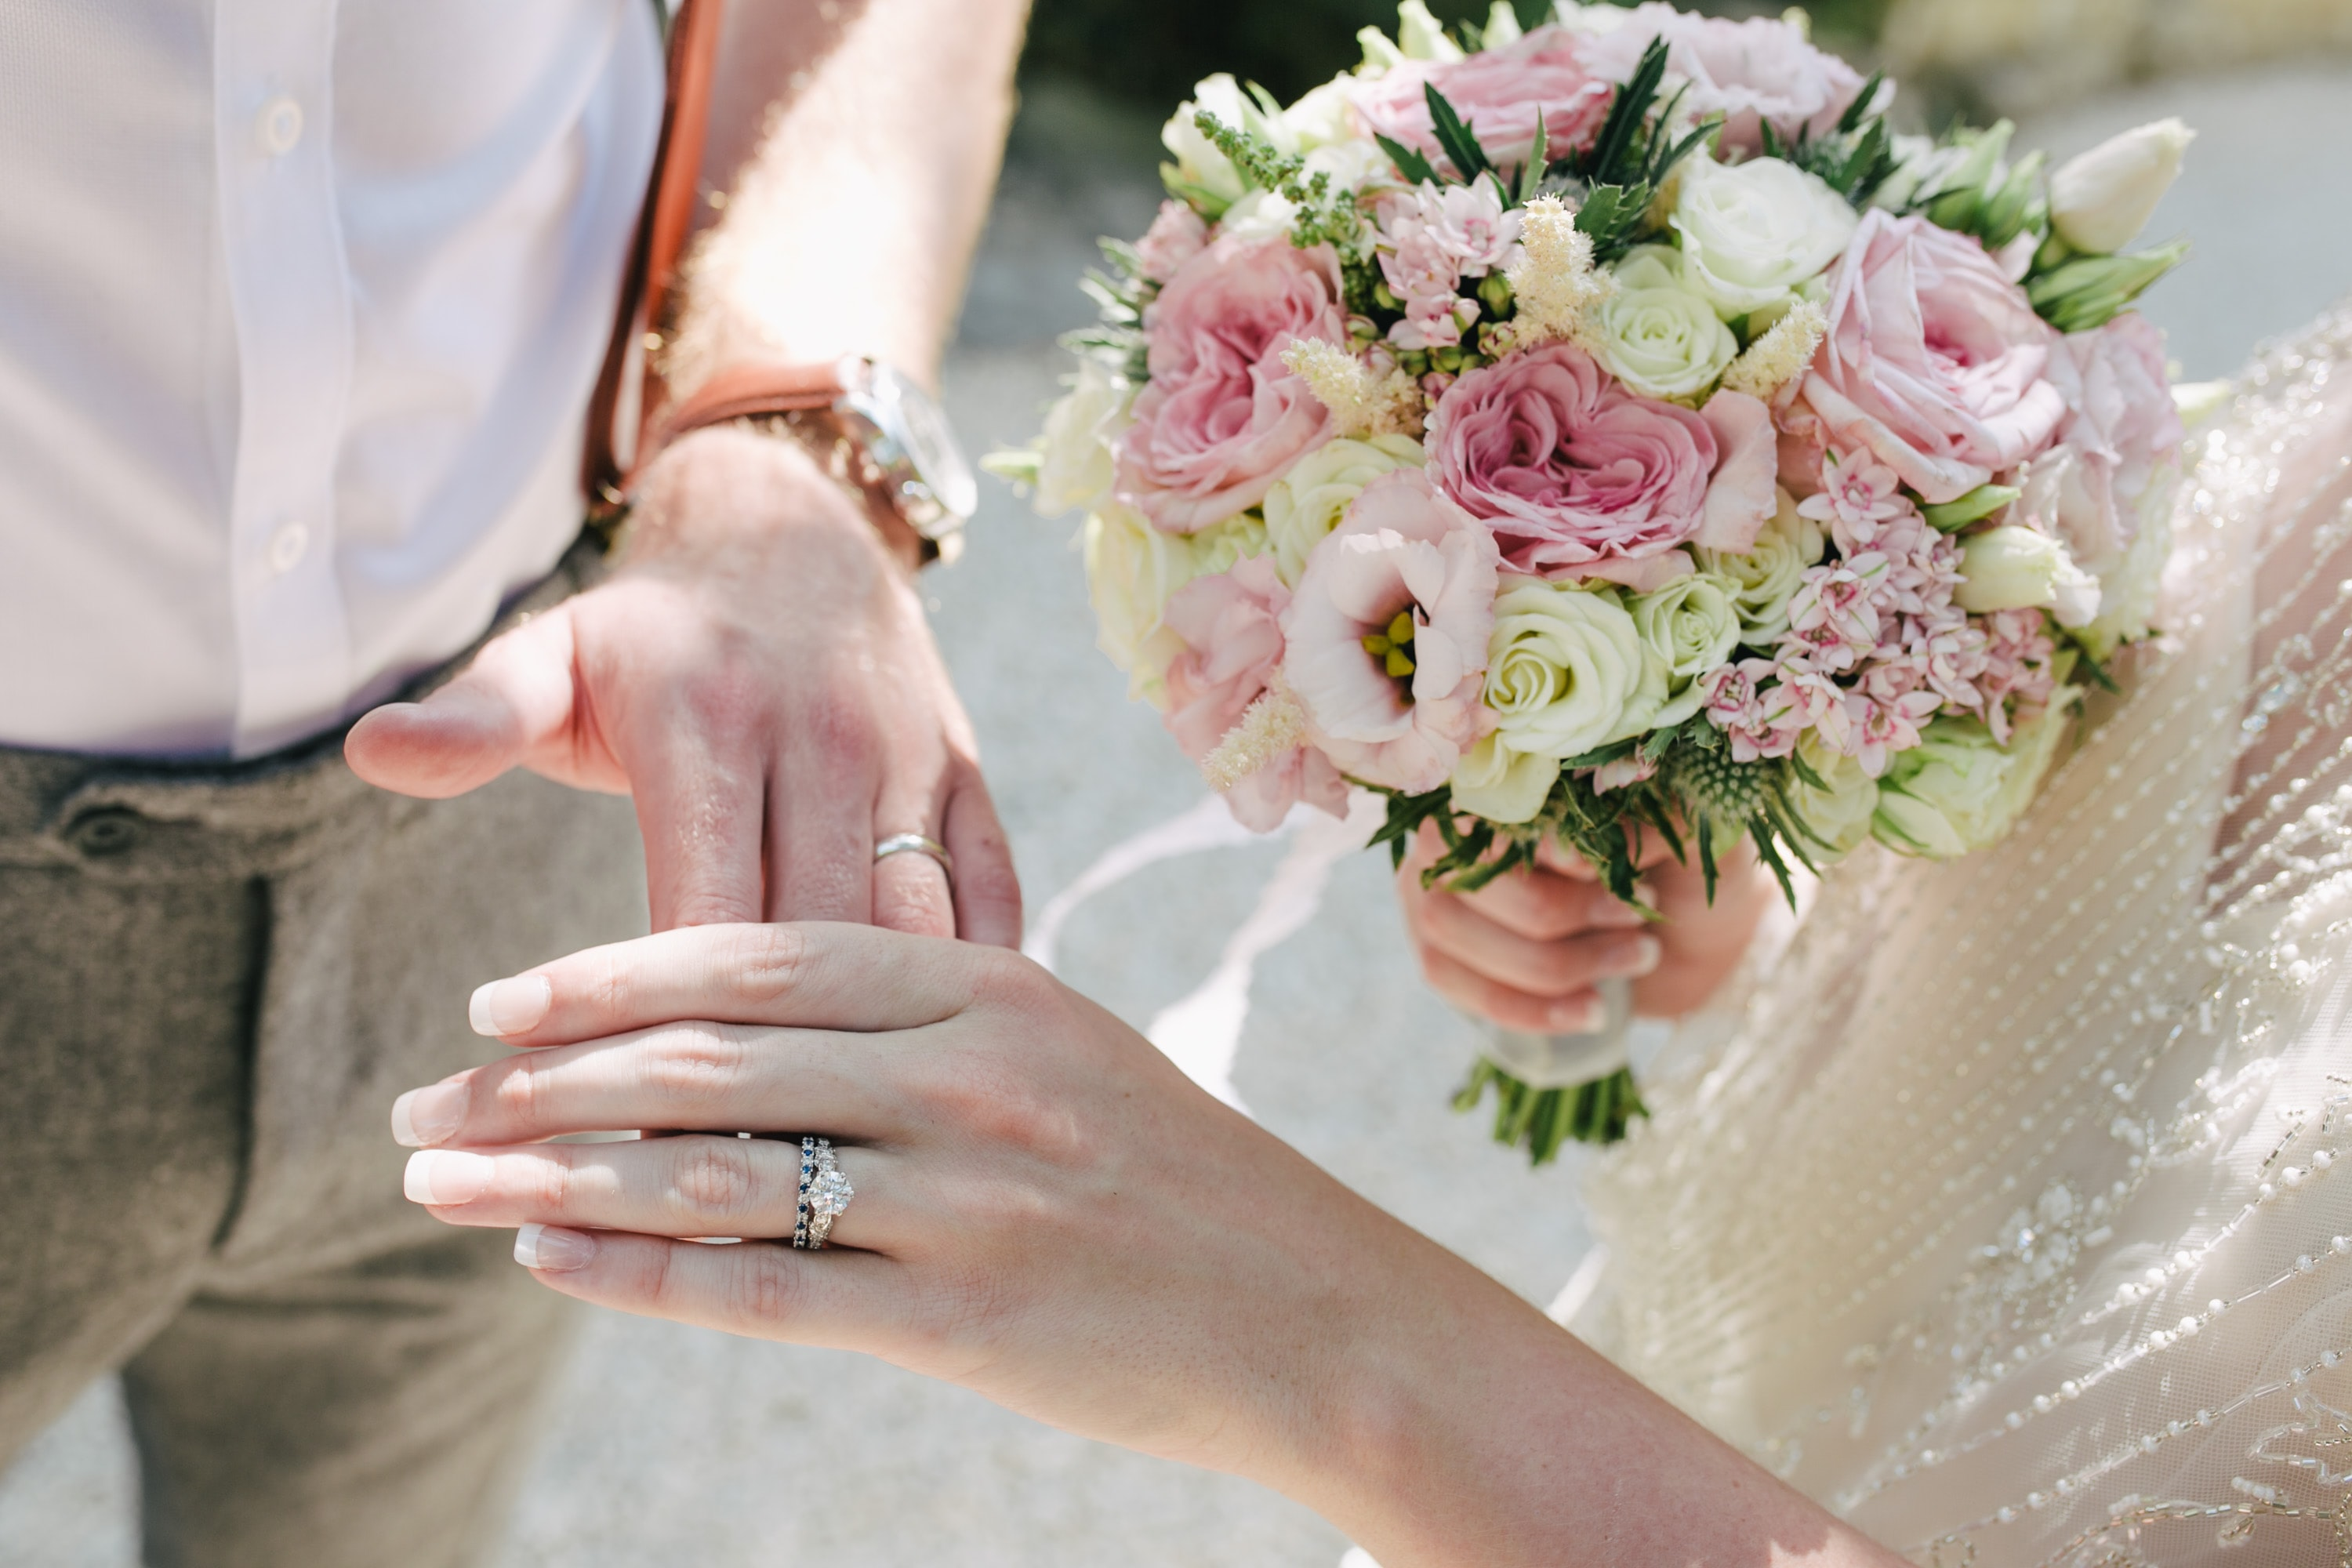 woman holding bouquet of flowers holding man's hand